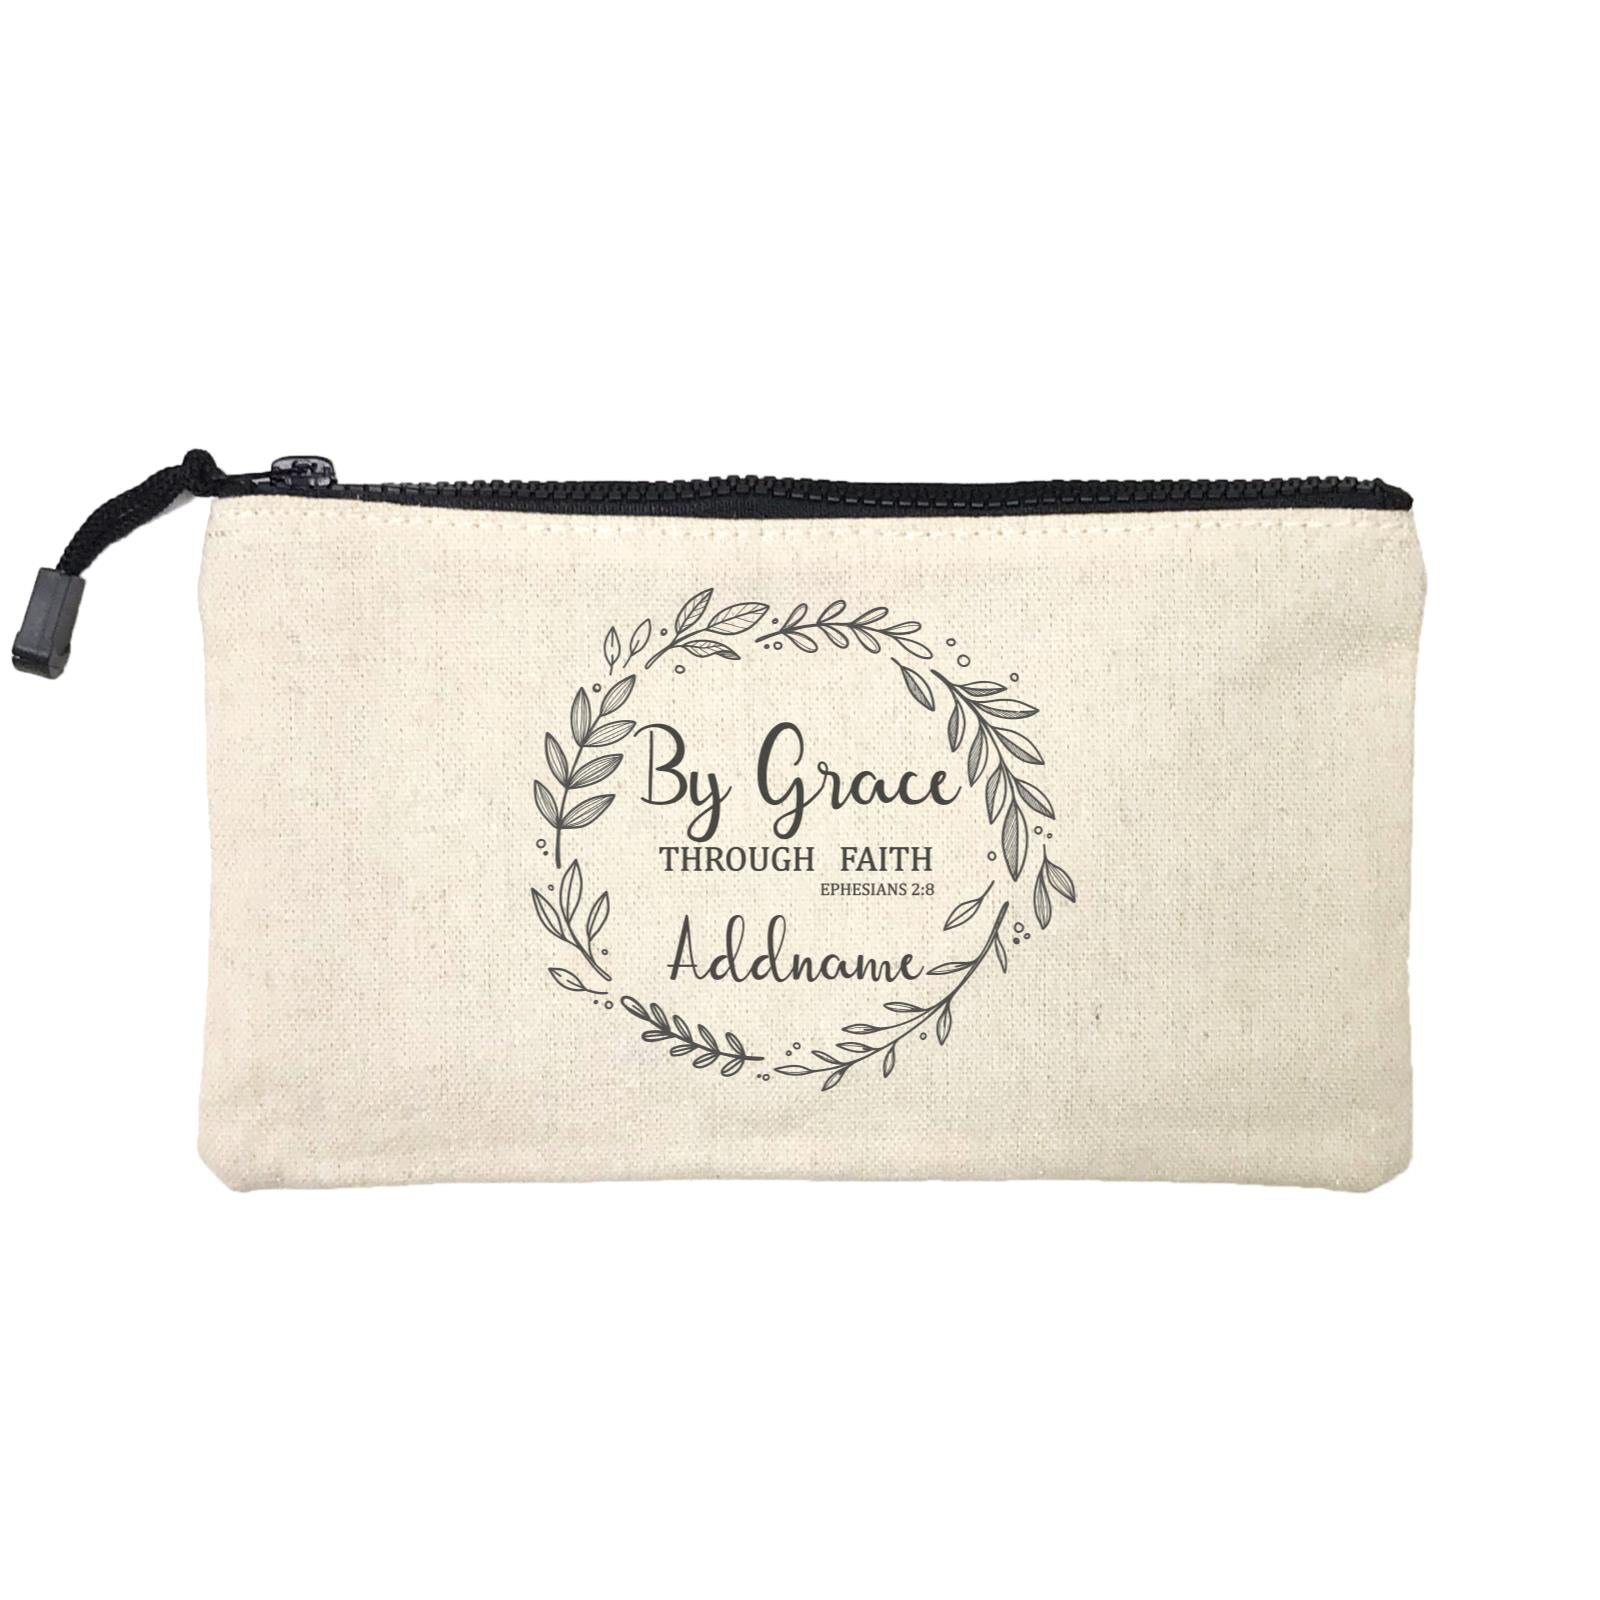 Christian Series By Grace Throug Faith Ephensians 2.8 Addname Mini Accessories Stationery Pouch